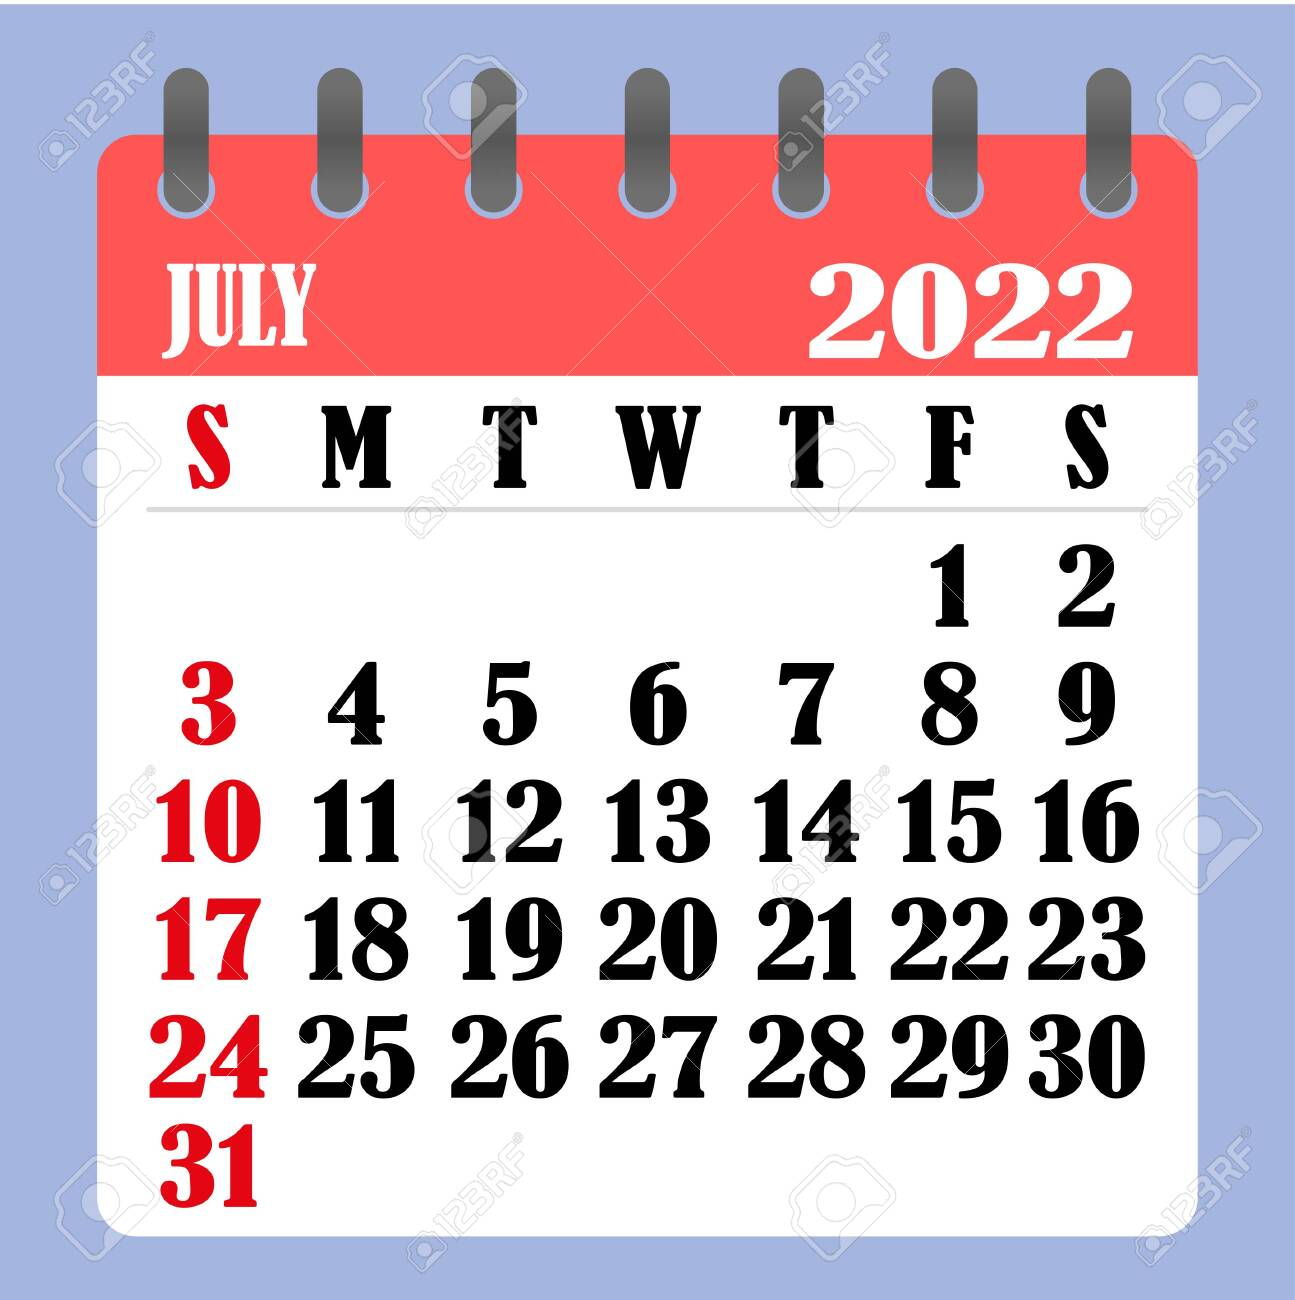 Calendar Of July 2022.Letter Calendar For July 2022 The Week Begins On Sunday Time Royalty Free Cliparts Vectors And Stock Illustration Image 152584296